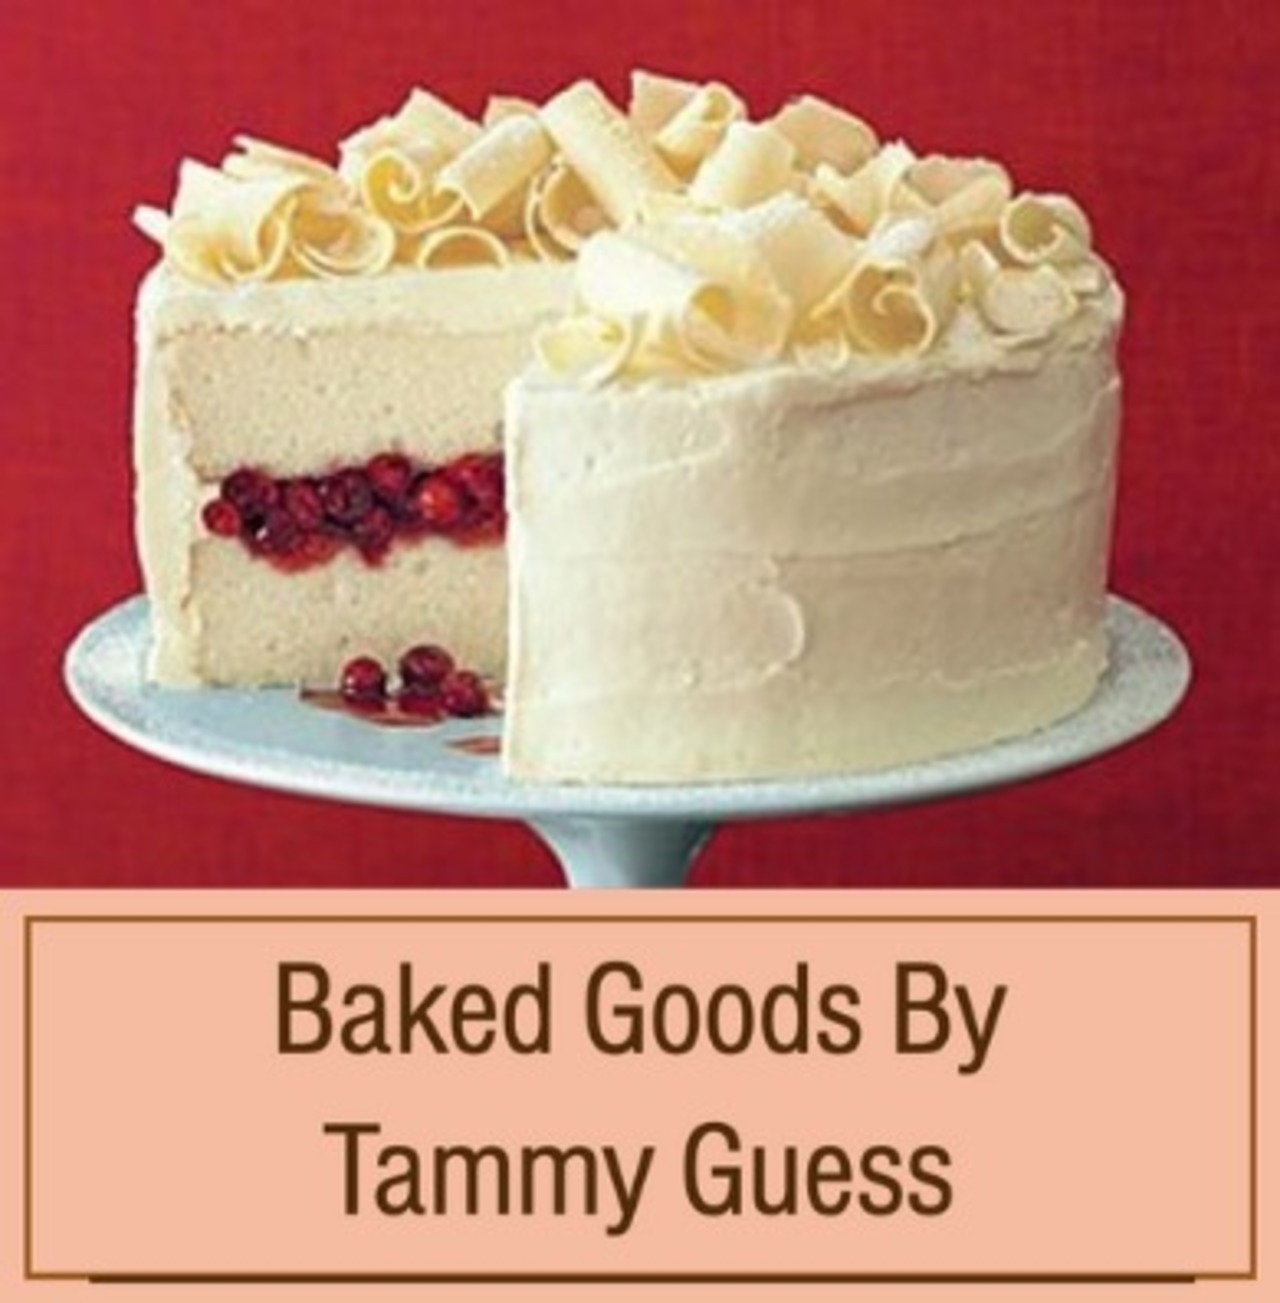 One Dessert from Baked Goods by Tammy Guess